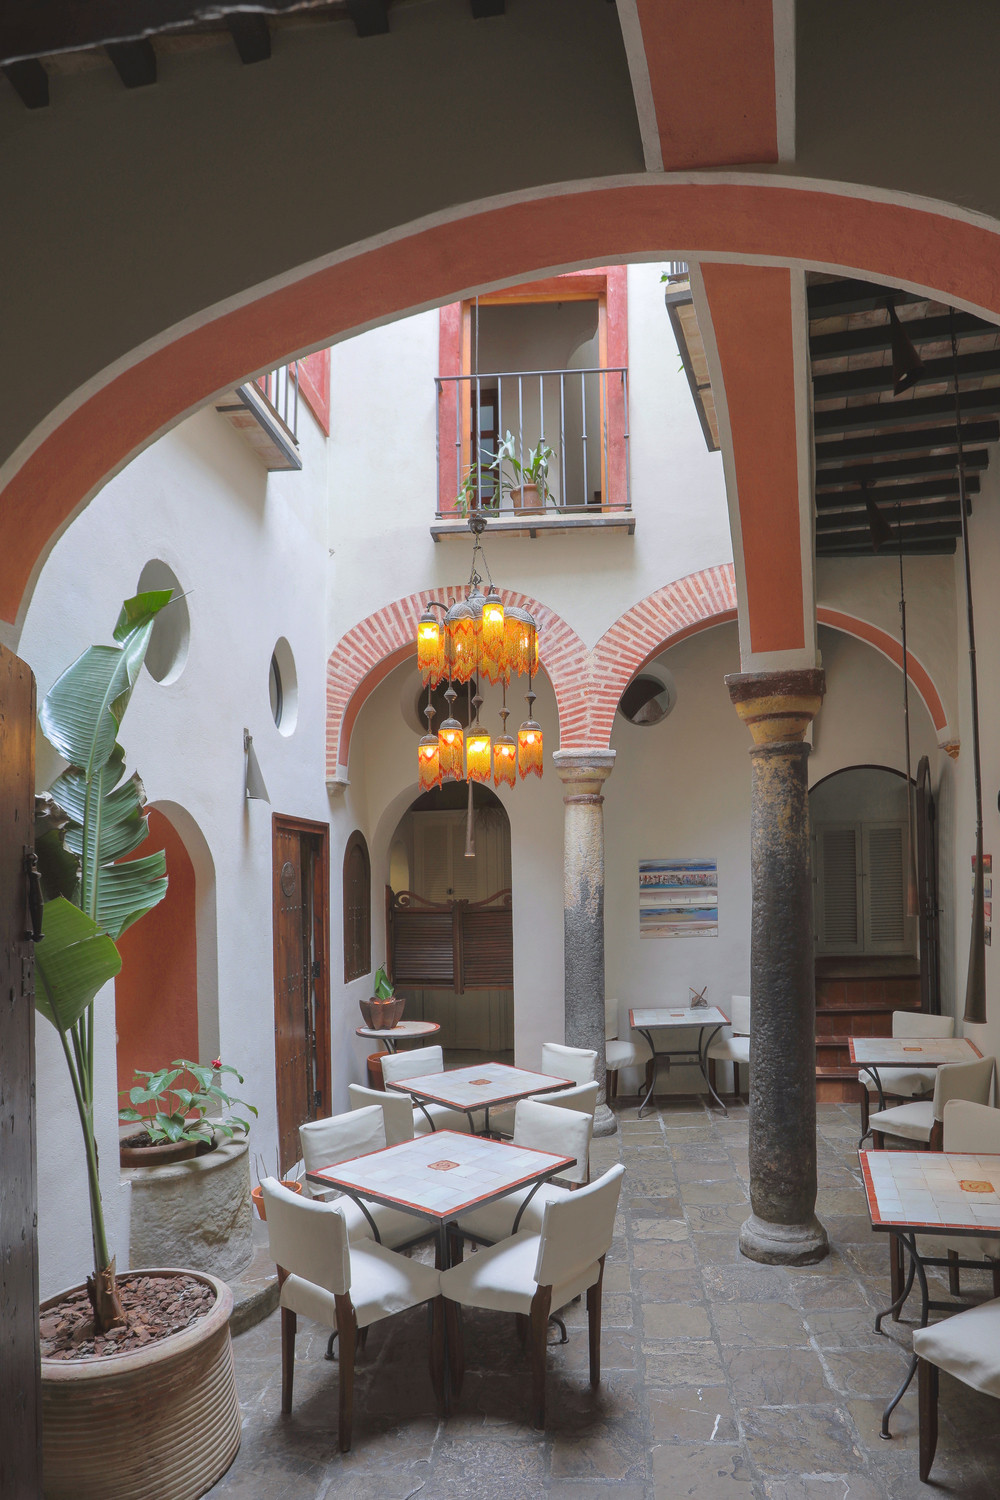 Hotel for Sale in Tarifa  La Posada is located in the heart of the old town of Tarifa, right in the , Spain